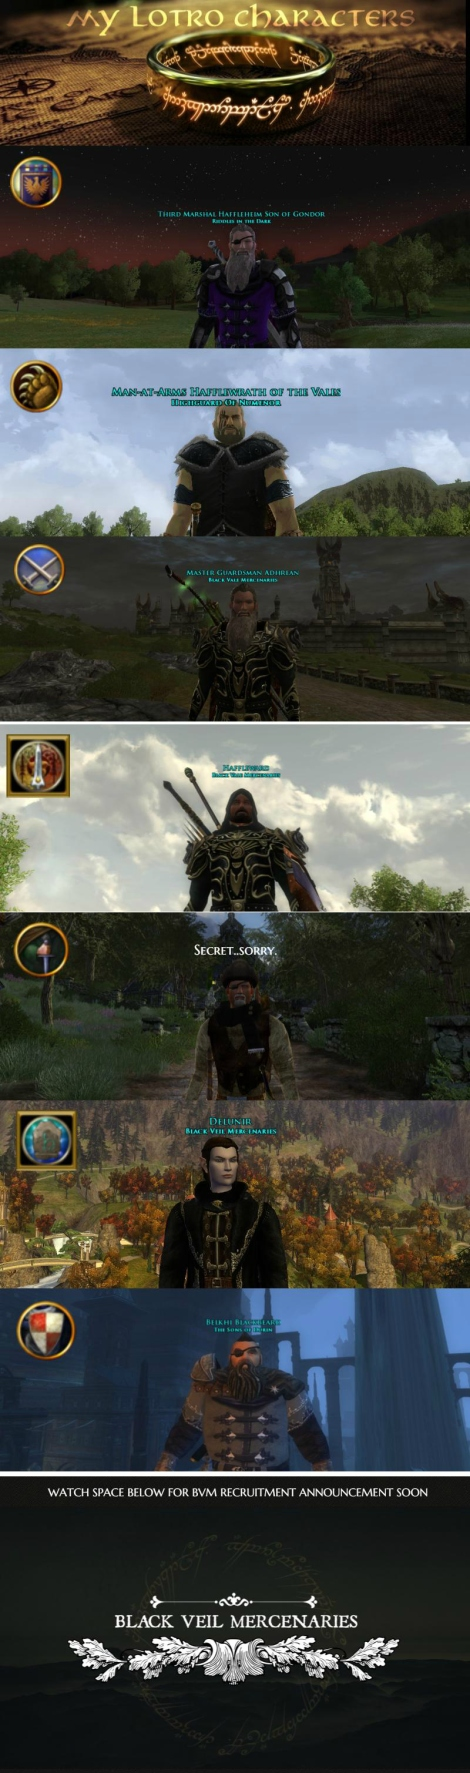 LOTRO- MY CHARACTERS